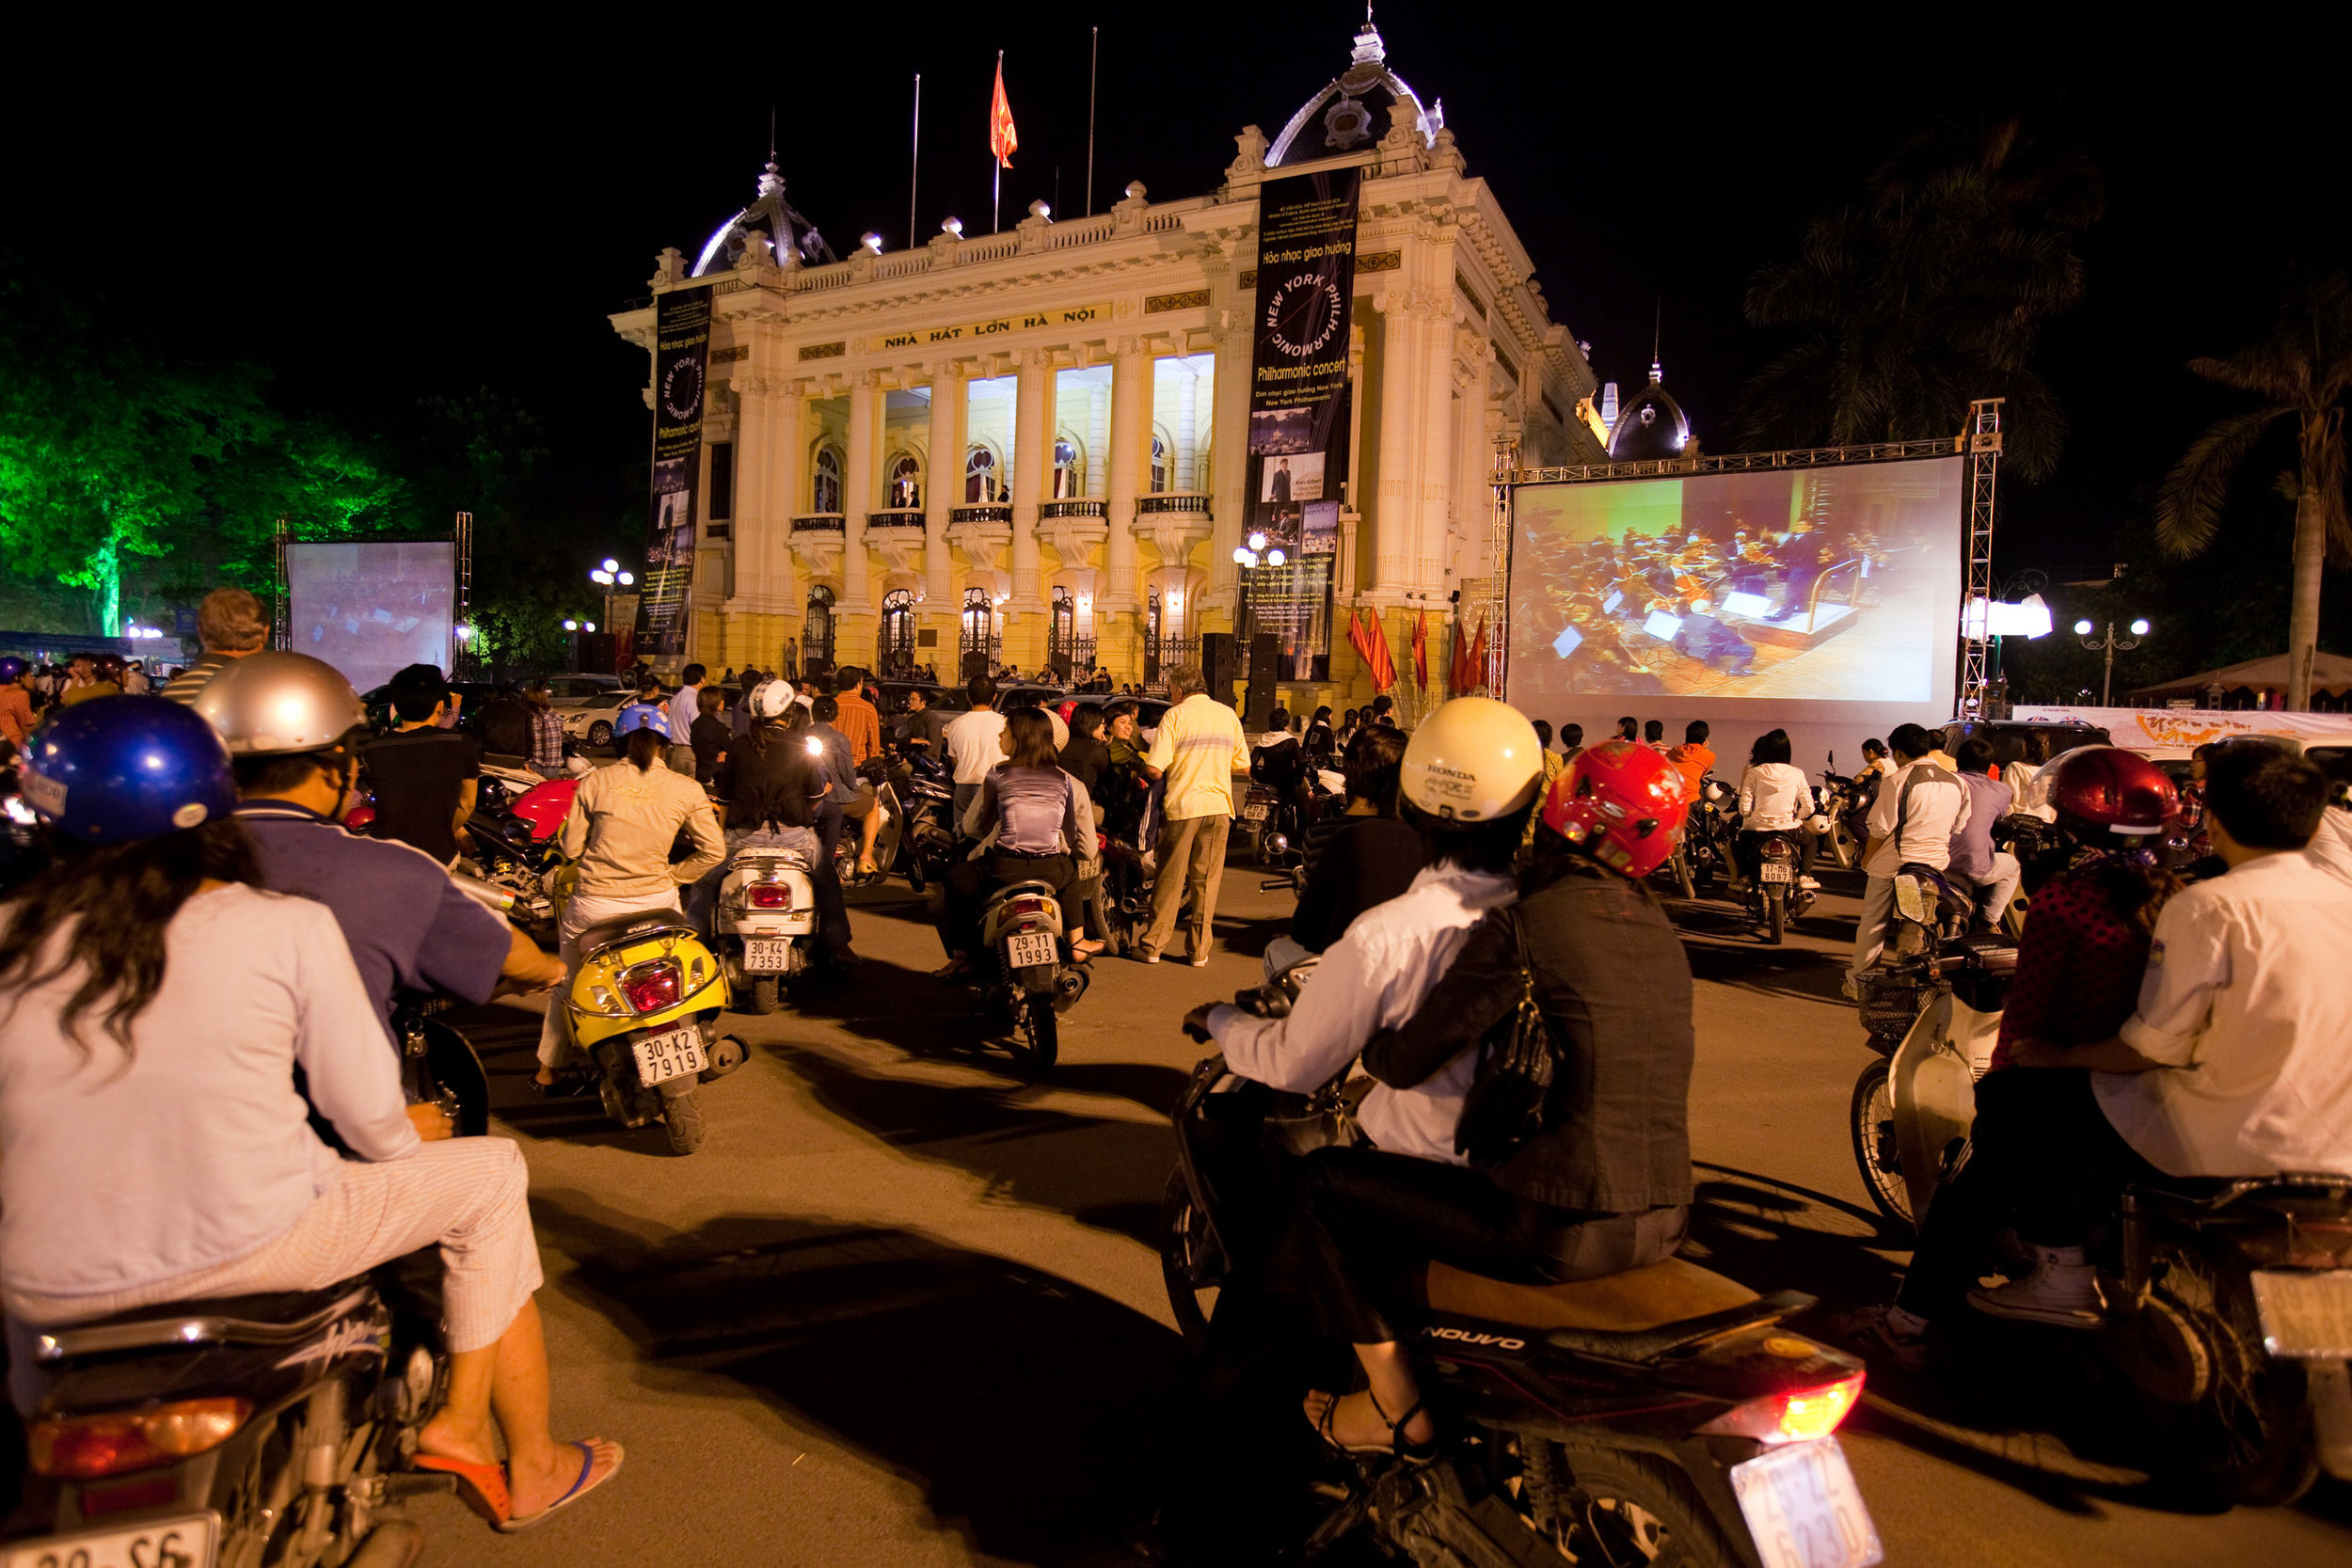 The Philharmonic's Vietnam debut was shared beyond the walls of the Hanoi Opera House through a real-time projection on jumbo screens so that the crowds gathered could experience the historic concert.